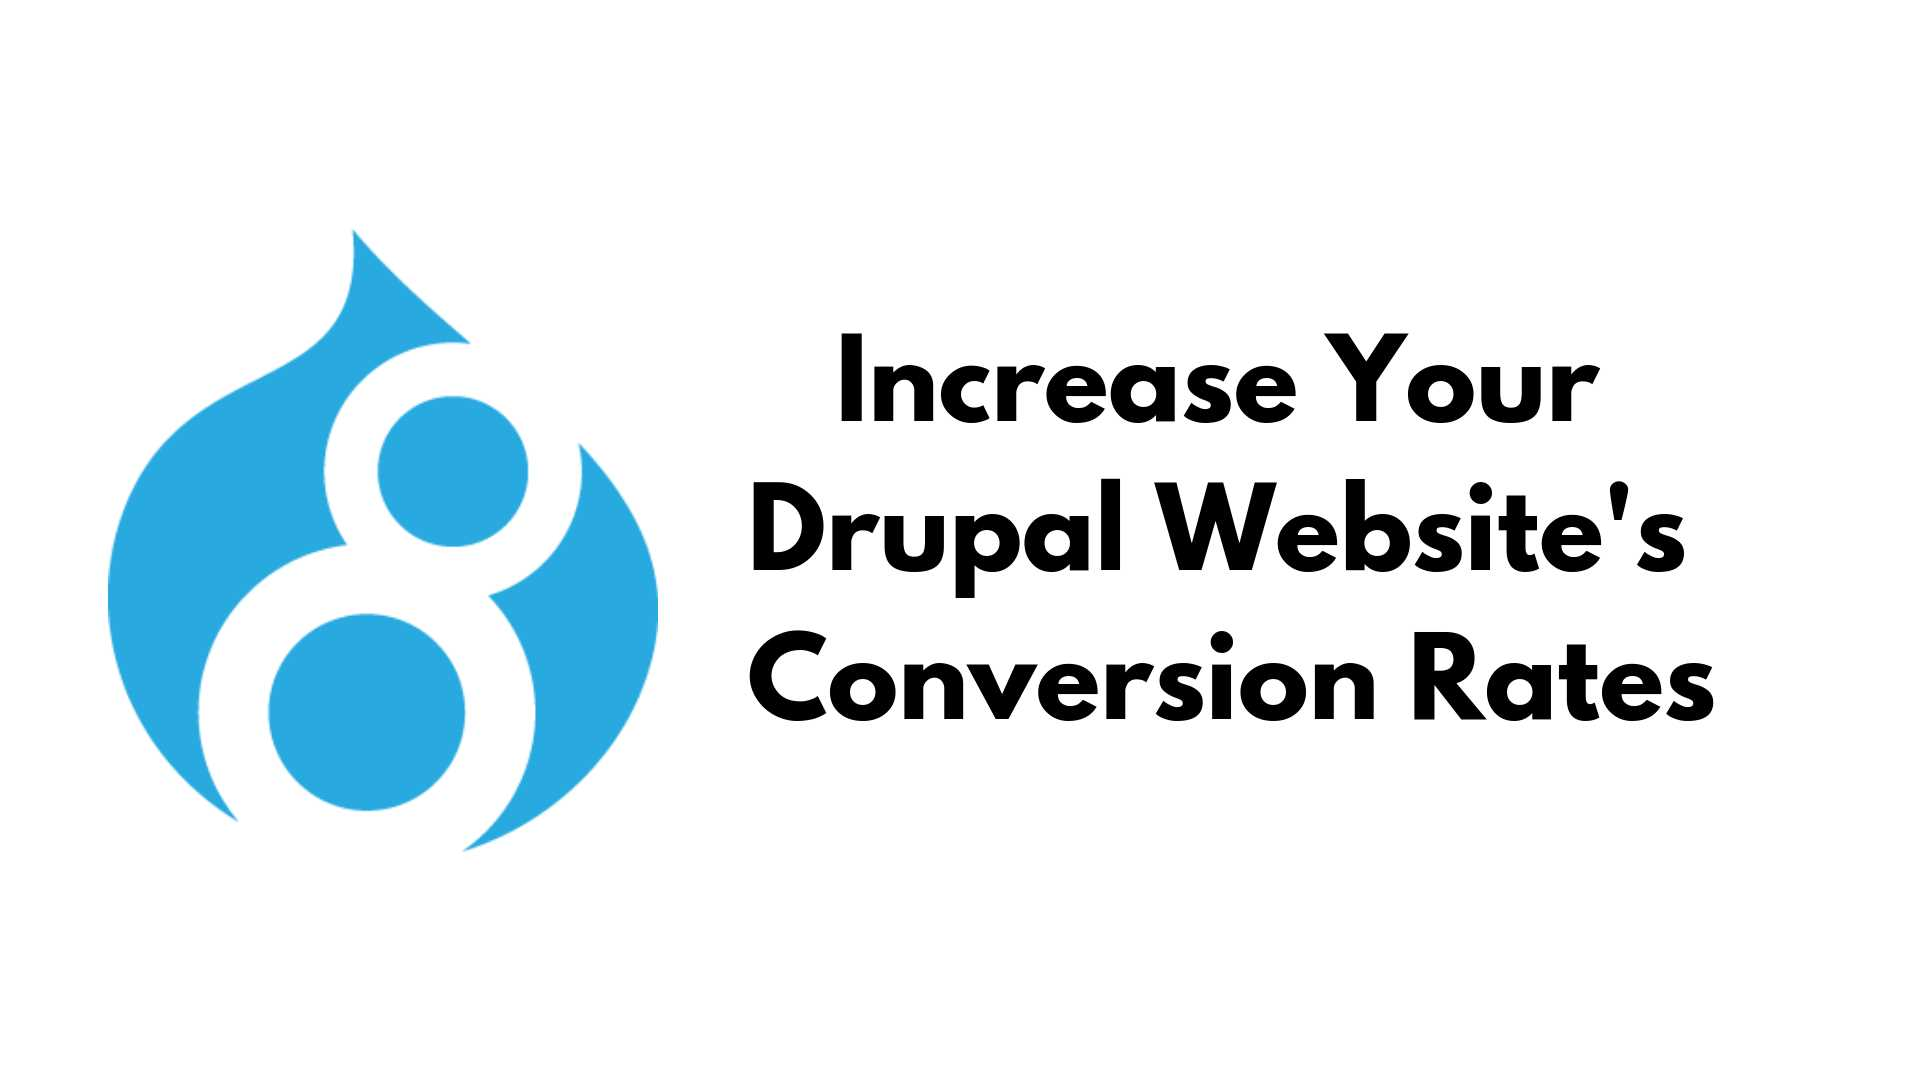 4 Effective Tips To Increase Your Drupal Website's Conversion Rates